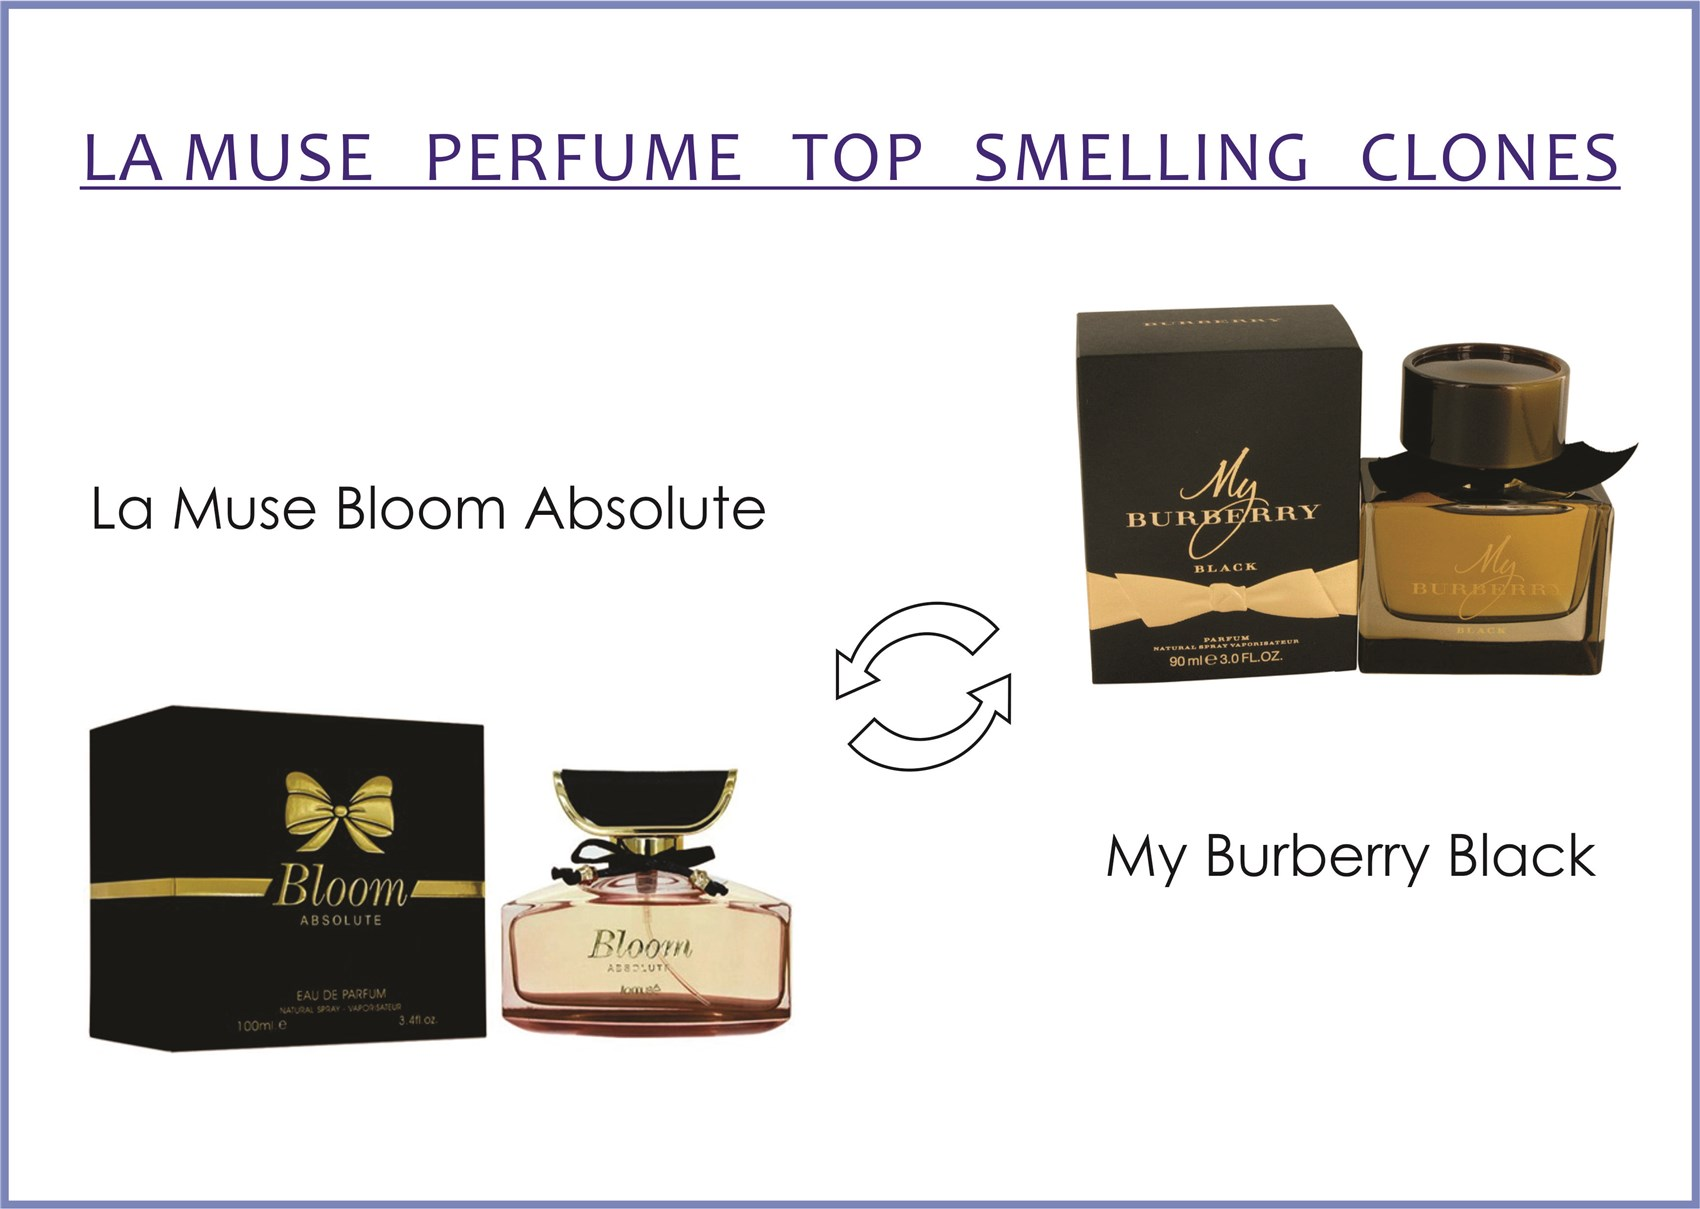 la-muse-bloom-absolute-for-women-100-ml-edp-by-lattafa-perfumes-burberry-my-burberry-black-for-men-90-ml-edp